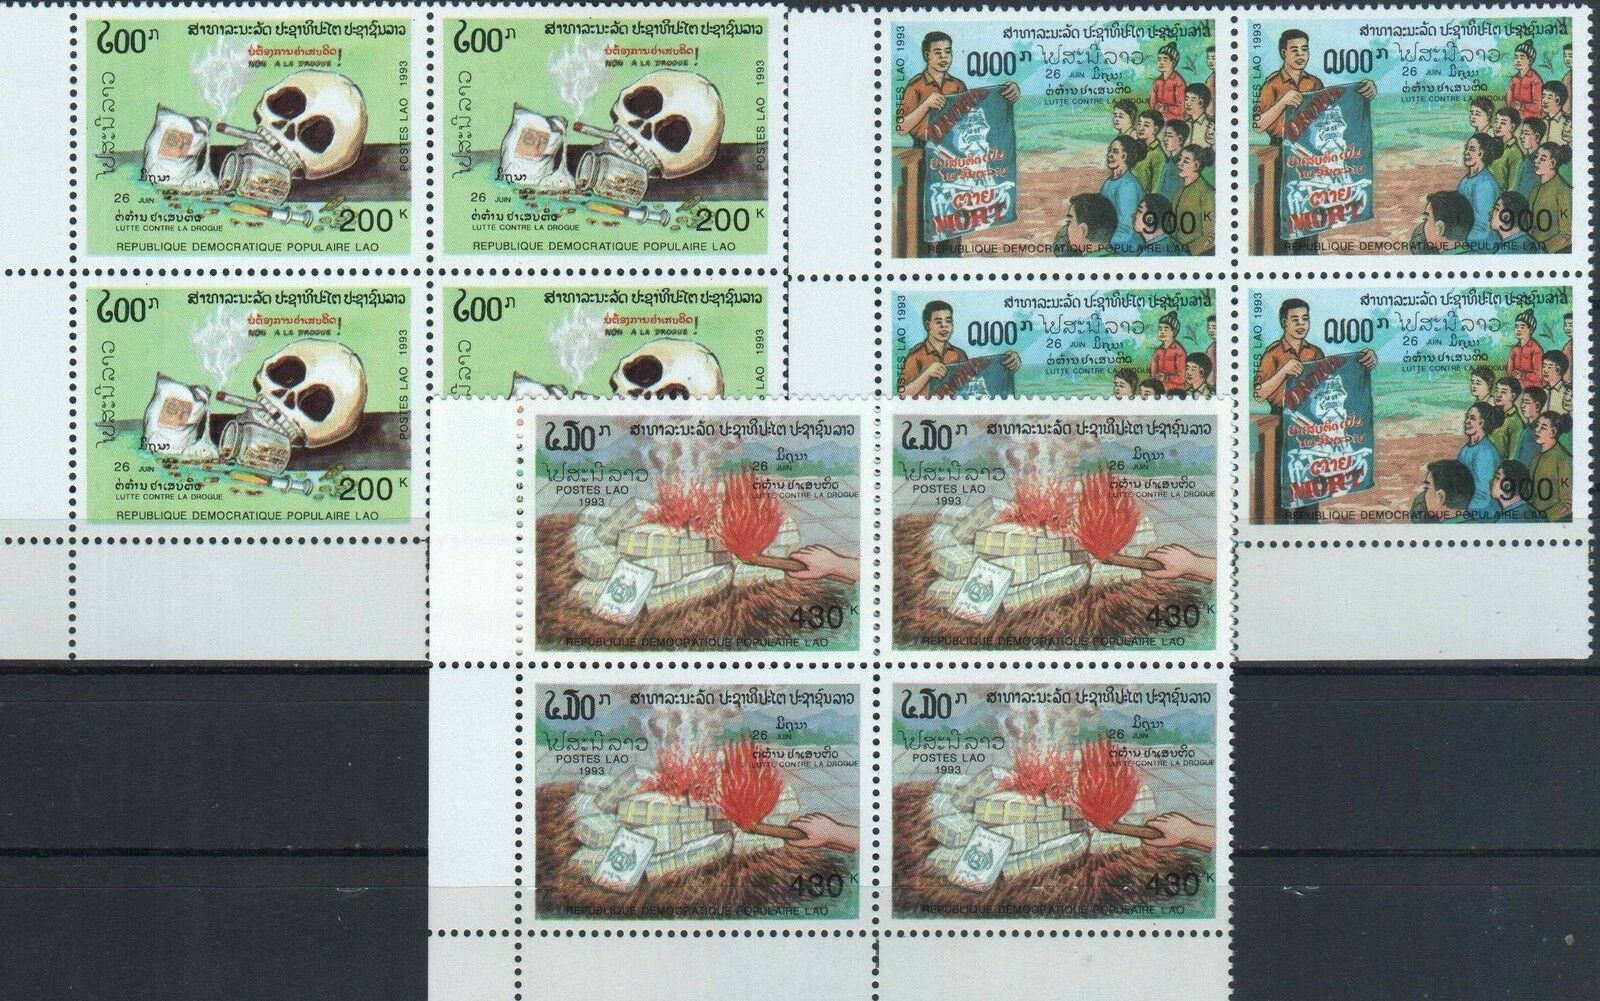 Laos 1993 Stamp Fight Against Drugs MNH